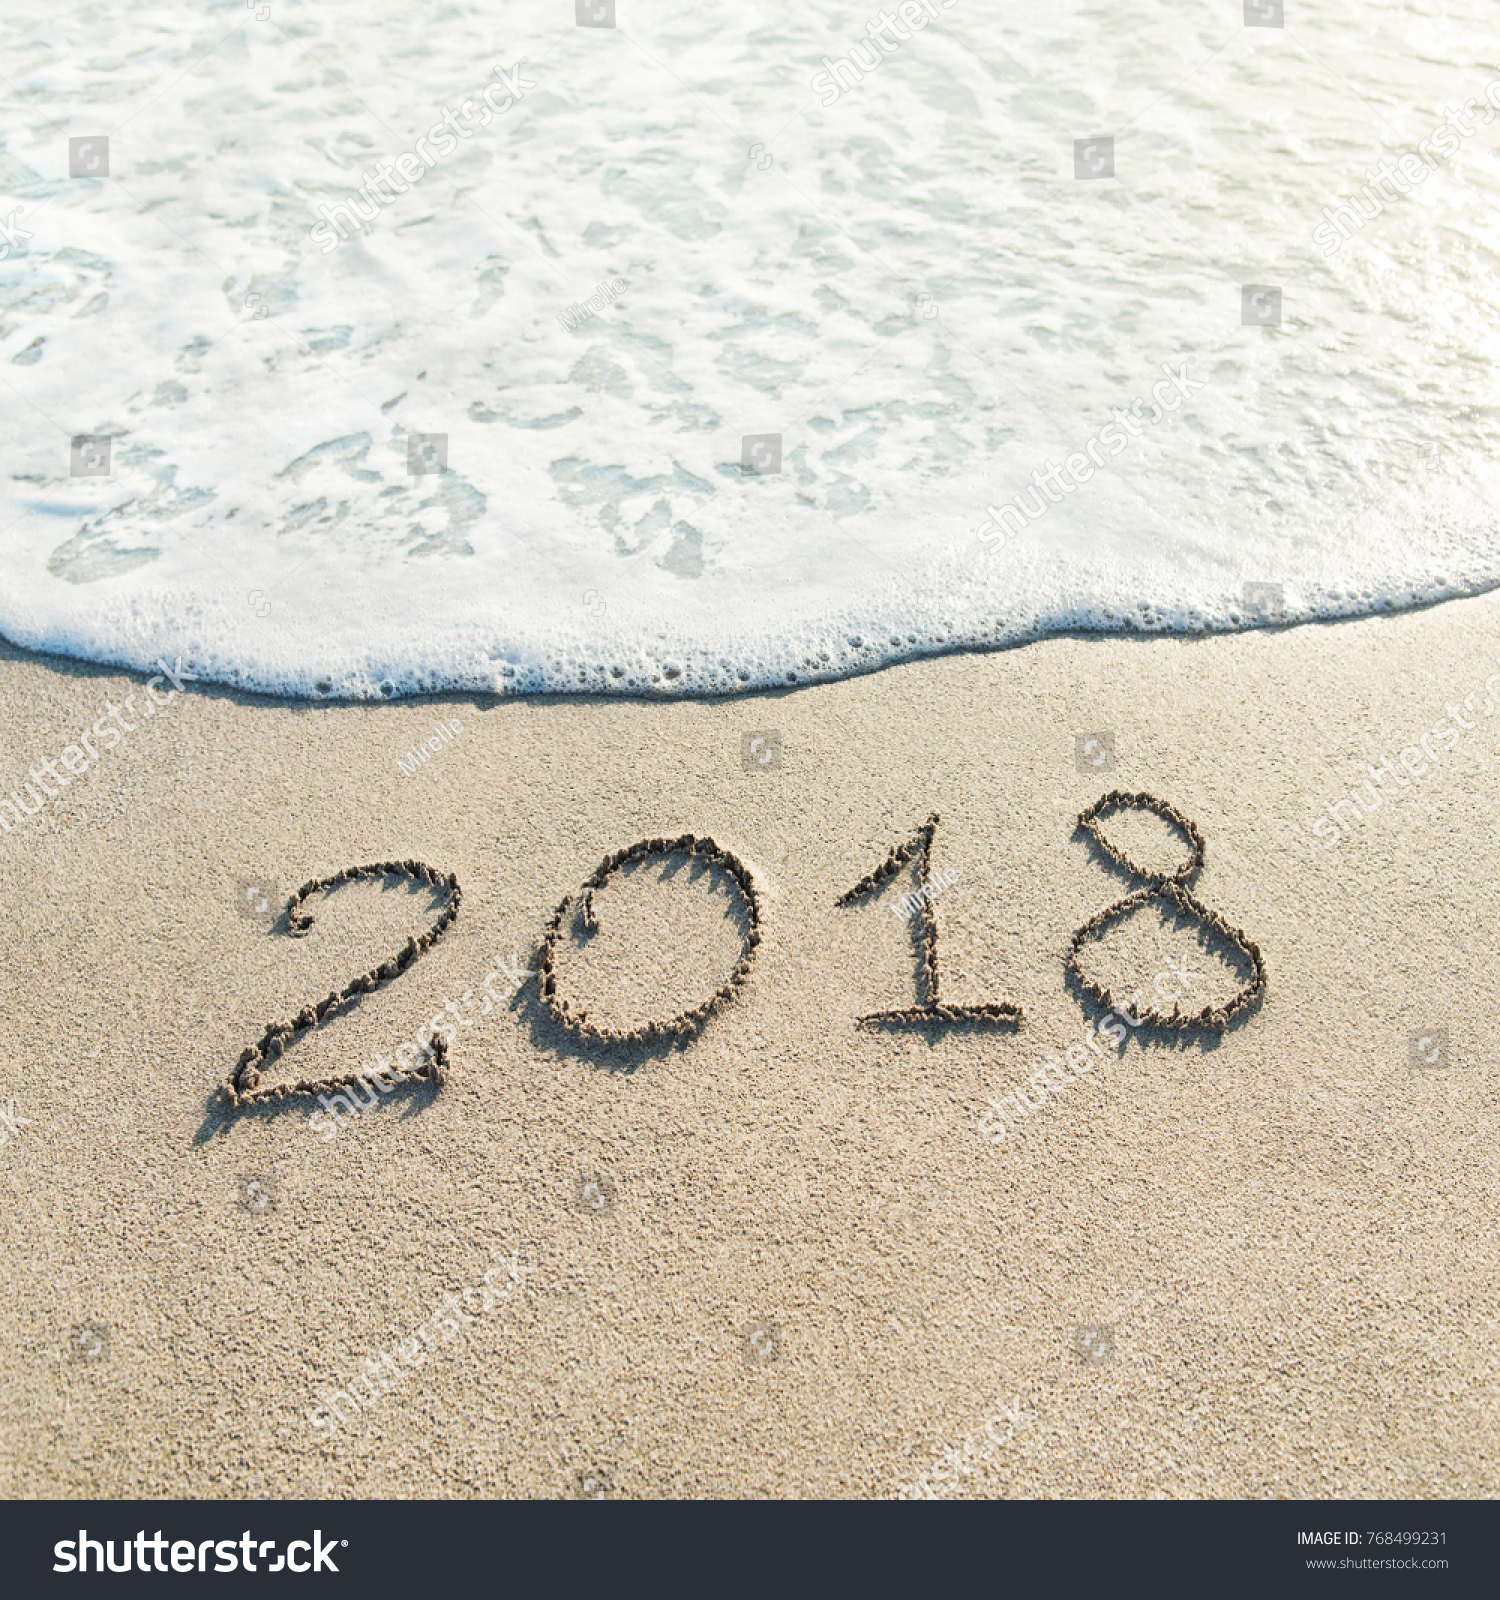 hand lettering happy new year 2018 caption on sand of beach with wave foam winter